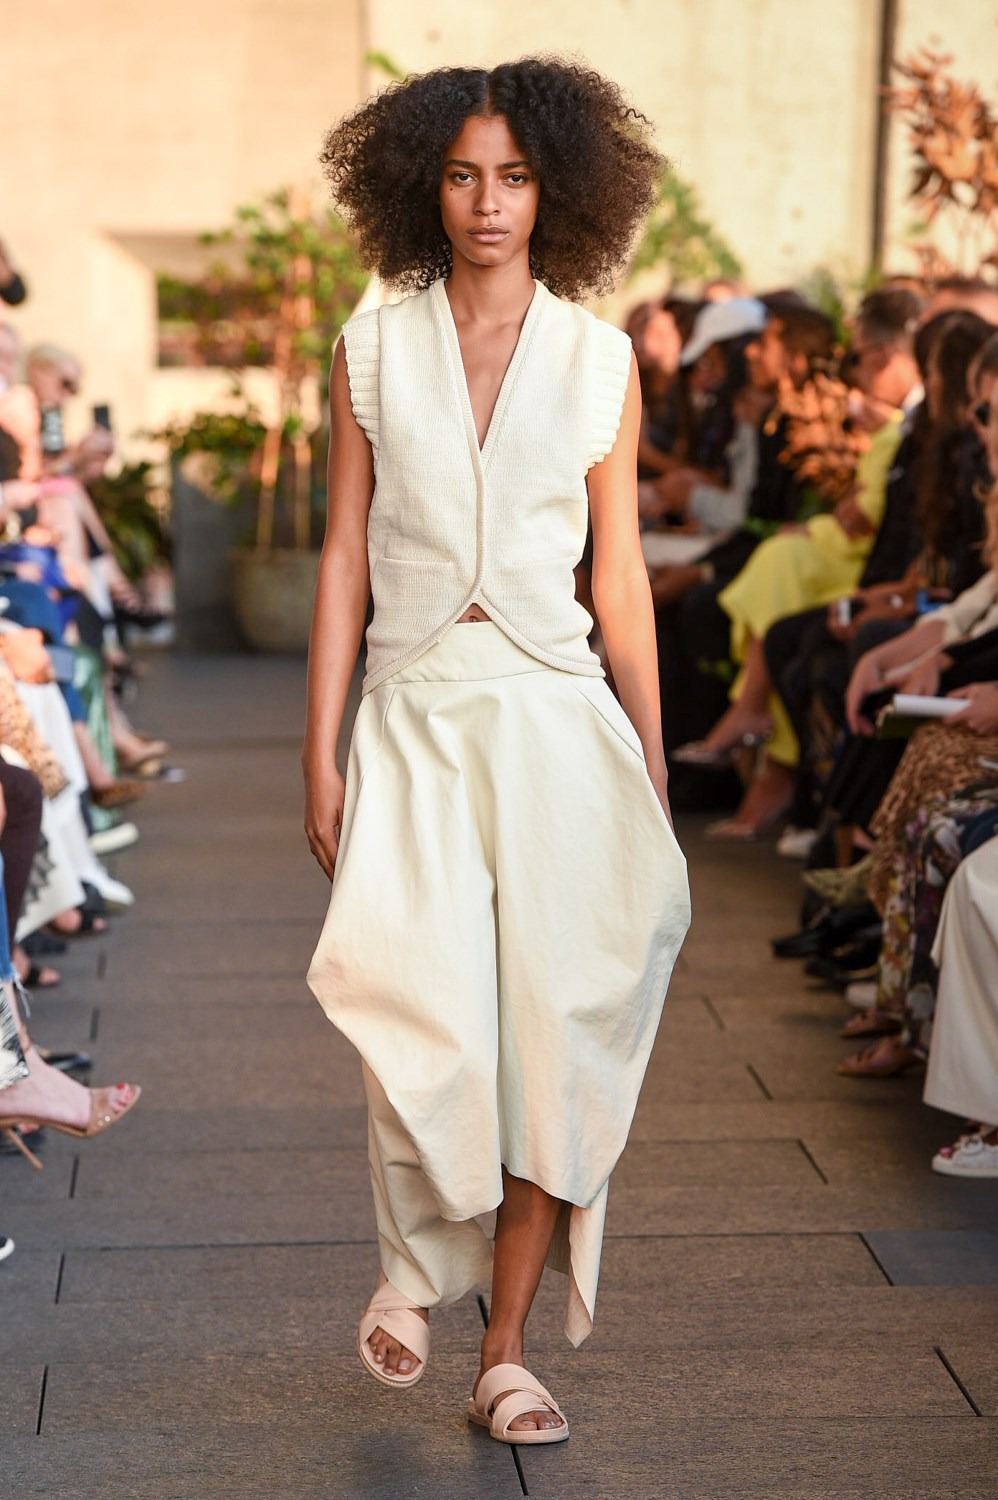 More Than A Runway Show - Sprign 2020 NYFW Wrap-Up by Constance White